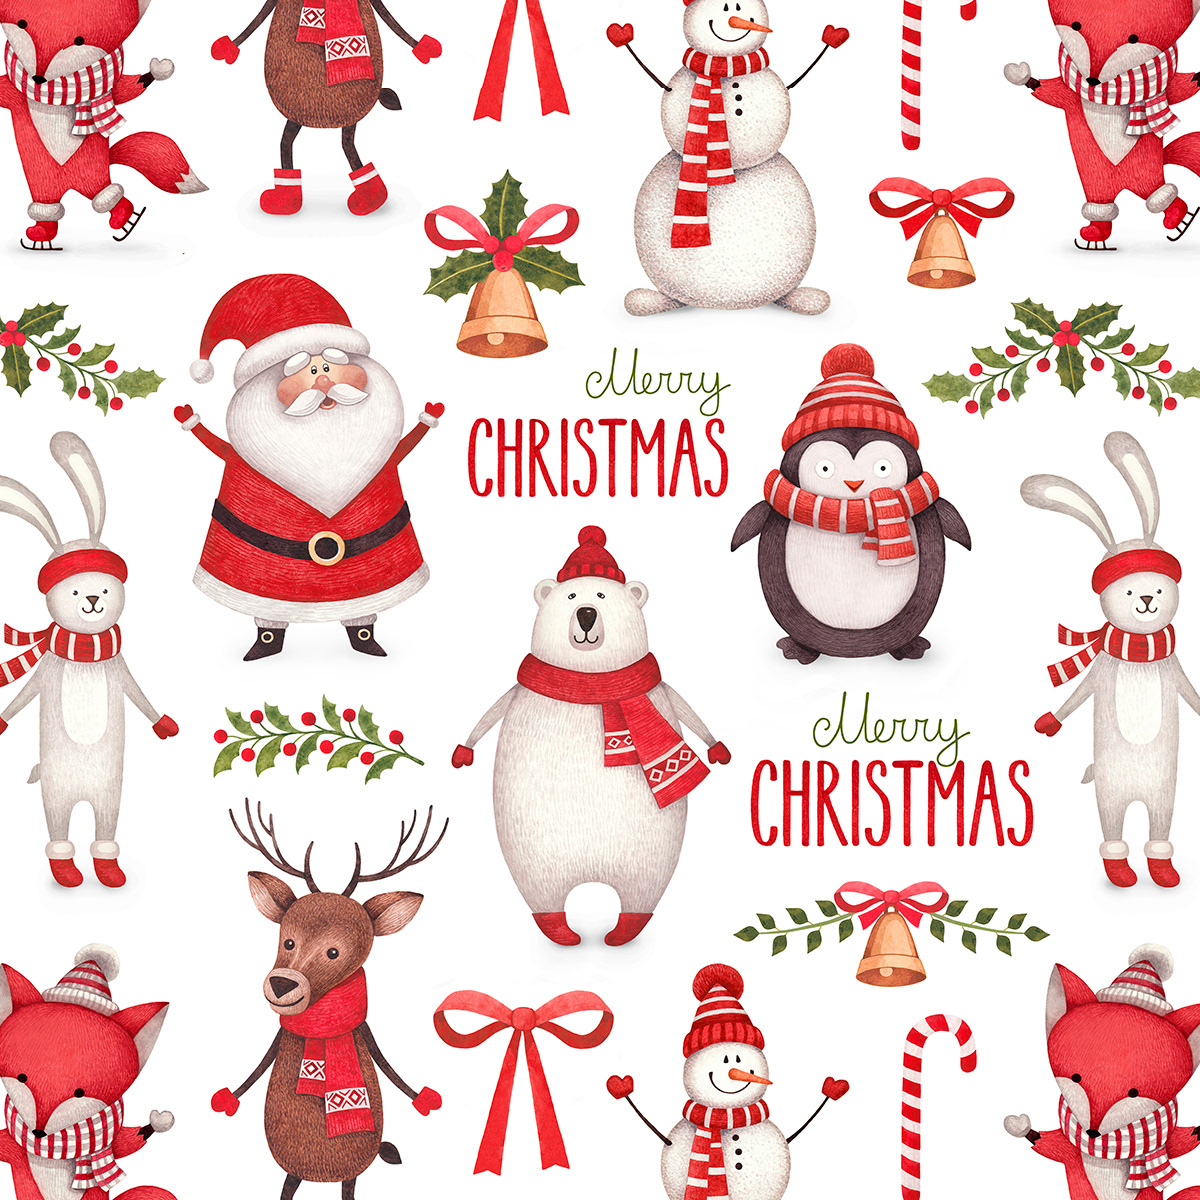 Christmas Designs.Cute Characters And Christmas Pattern Design On Behance